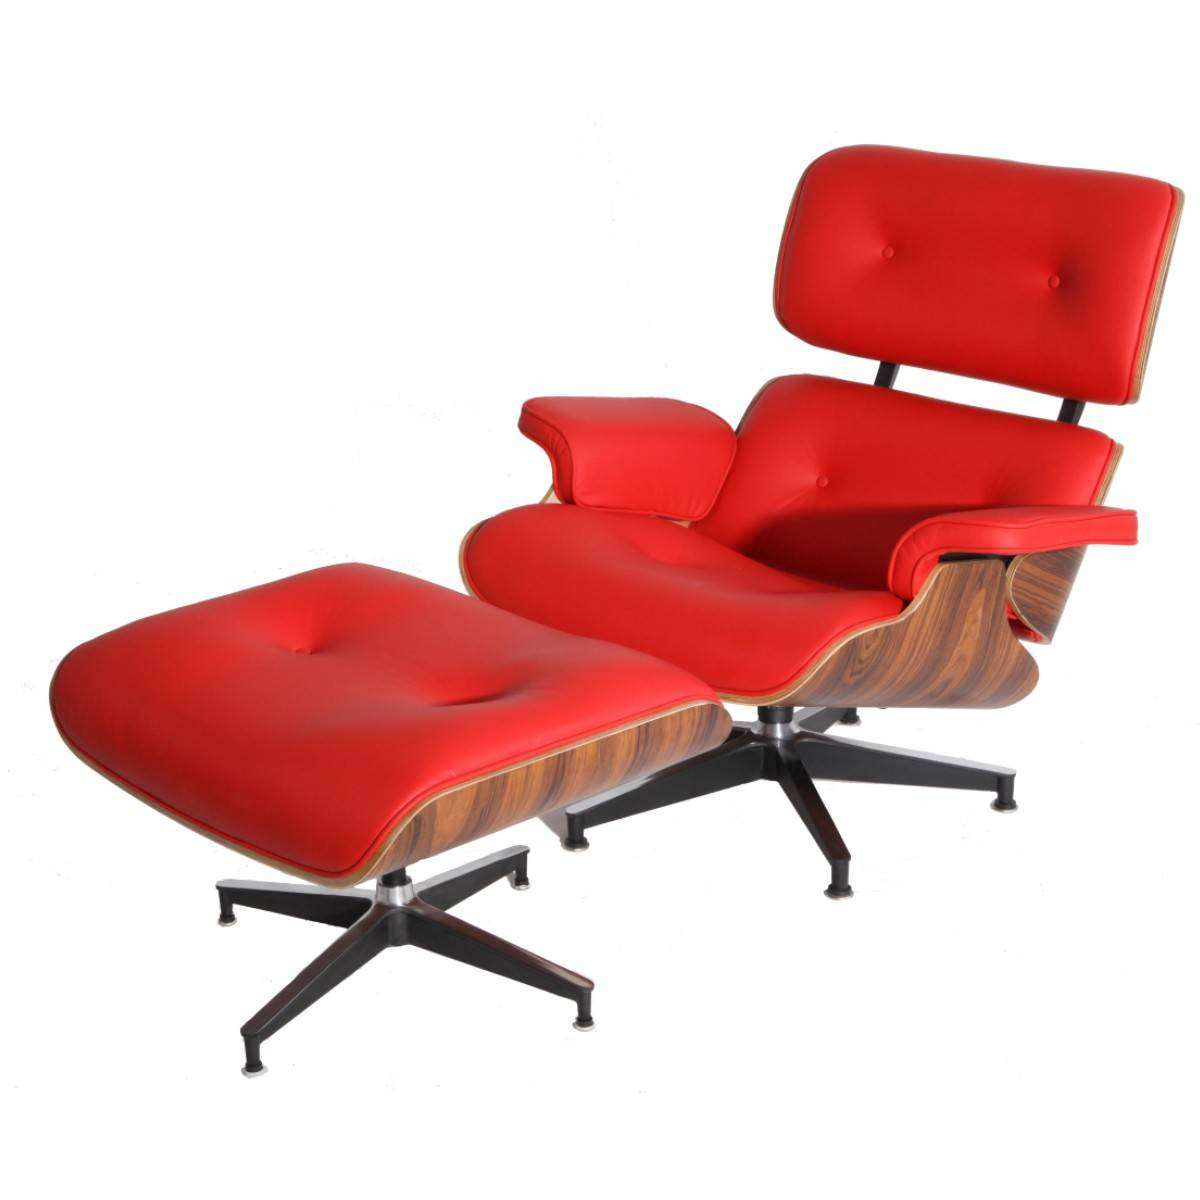 Charmant Eames Style Lounge Chair Red Palisander